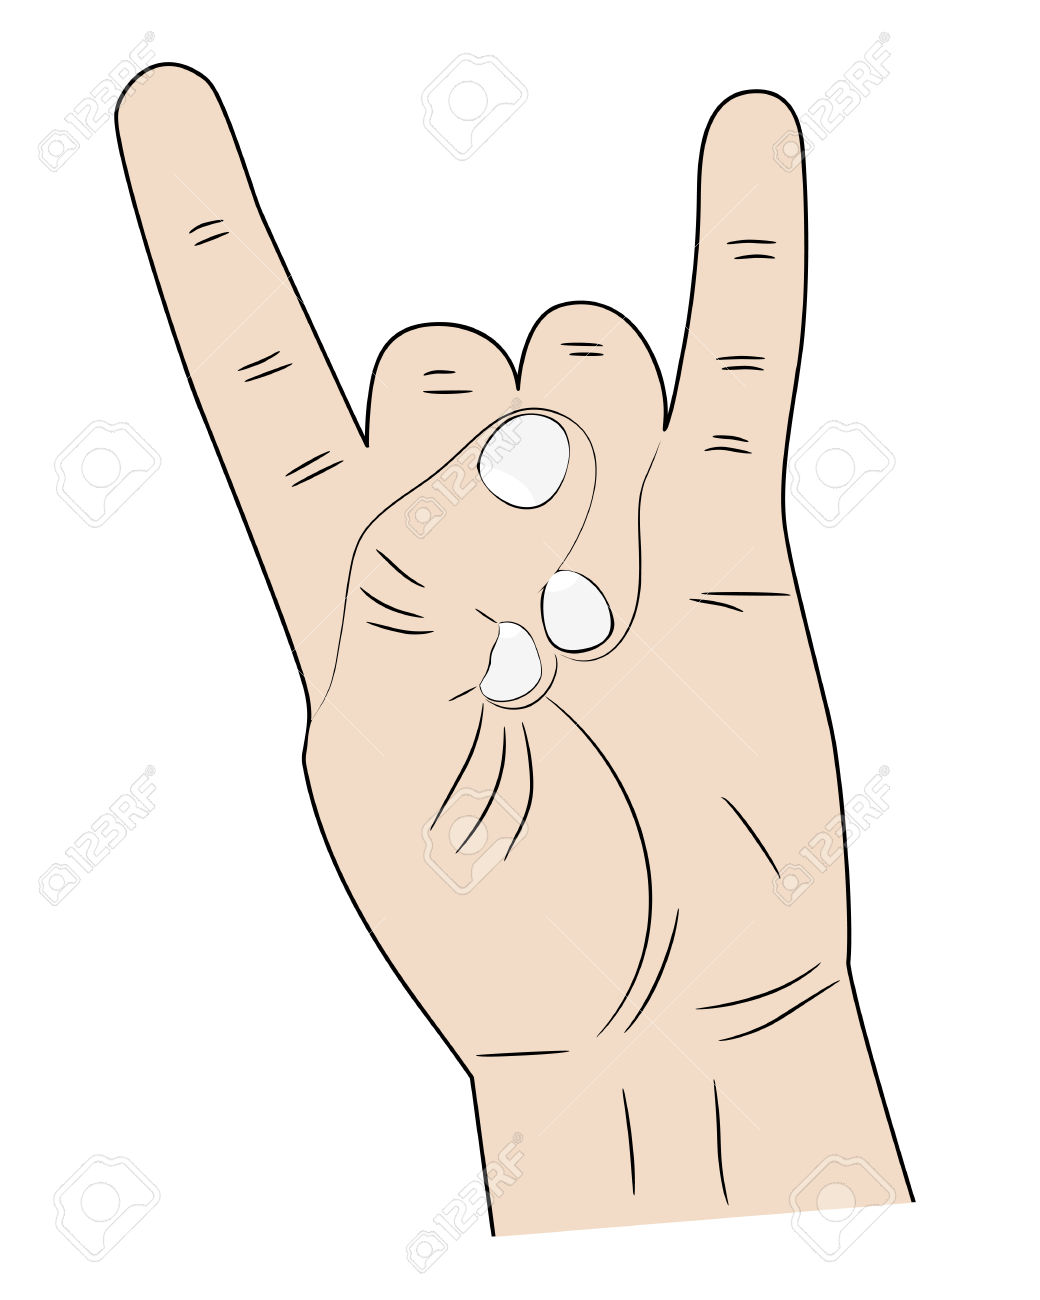 Pointer finger and pinky finger clipart images image royalty free stock Sign Hands Index Finger And Pinky Fingers Raised Up Royalty Free ... image royalty free stock